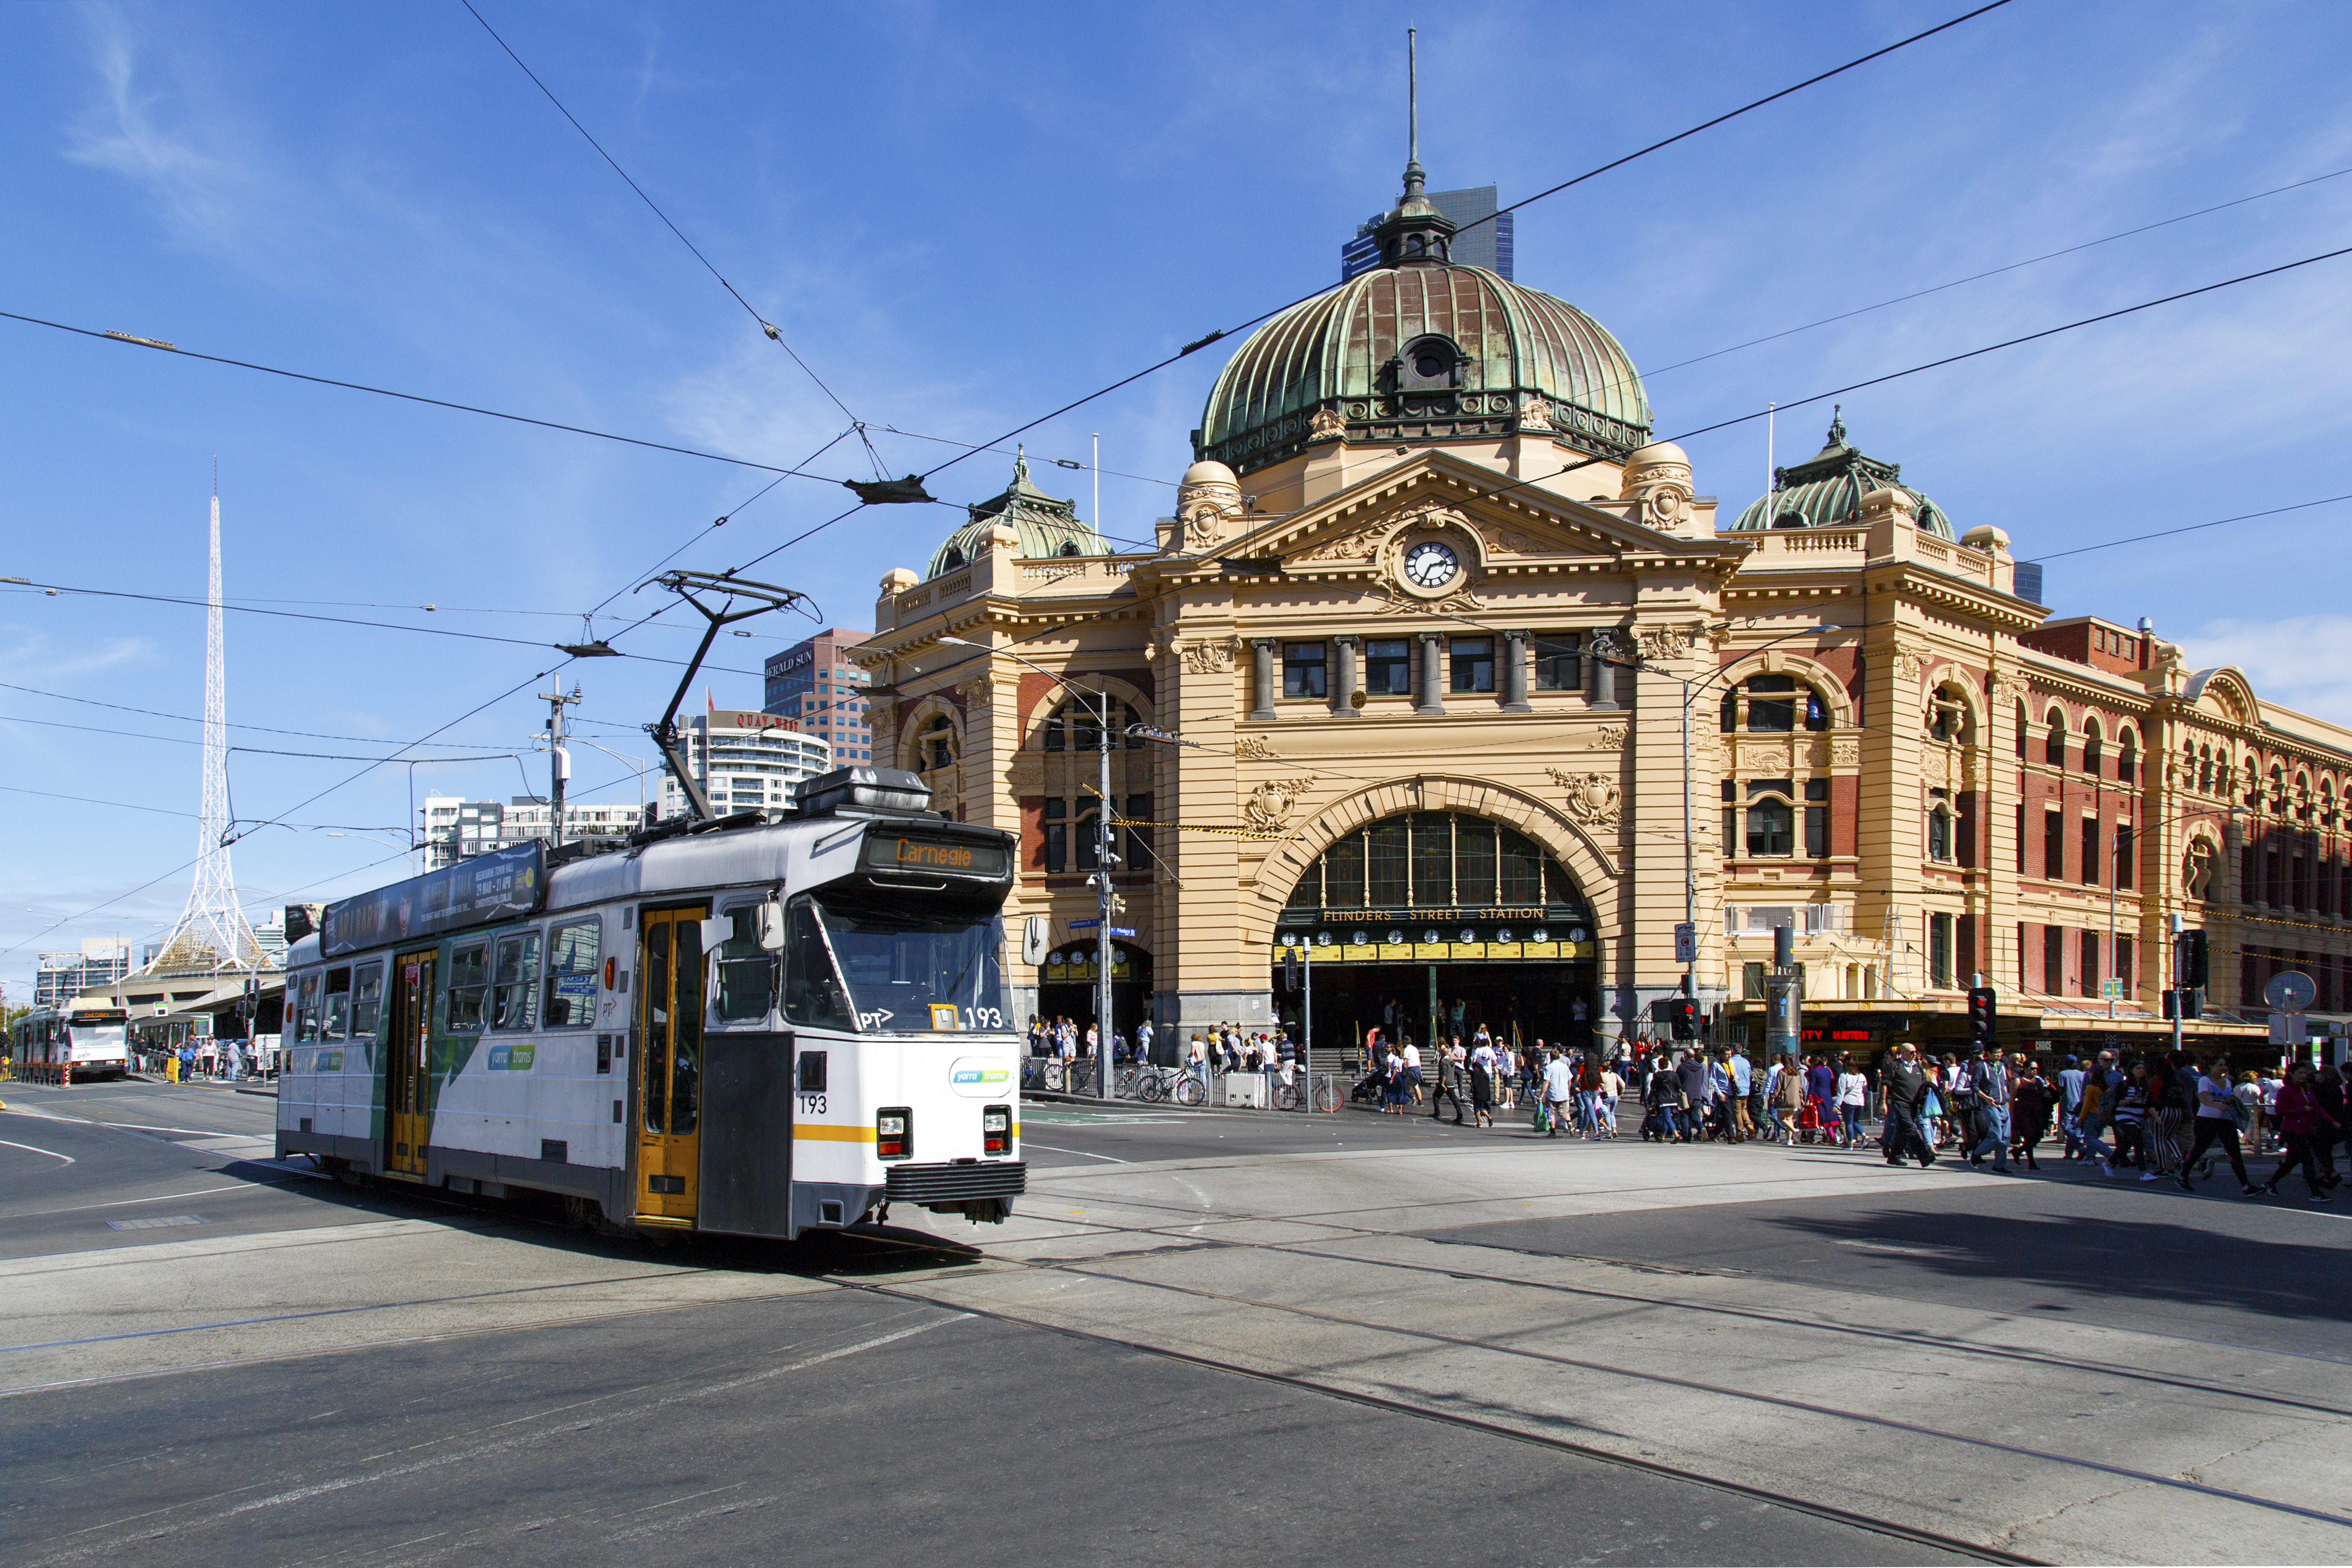 Tram at Flinders Street Station.